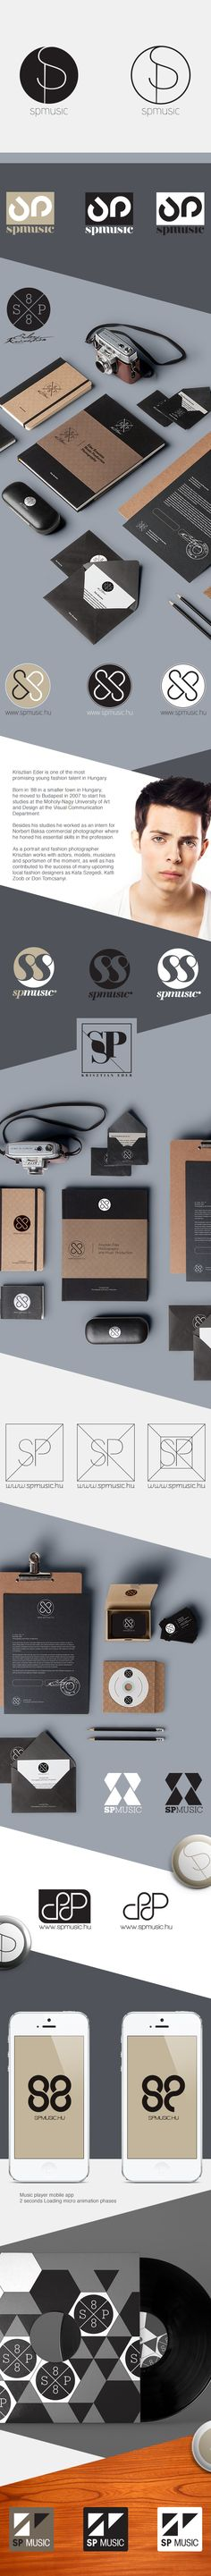 SP Logo / Identity ideas on Behance